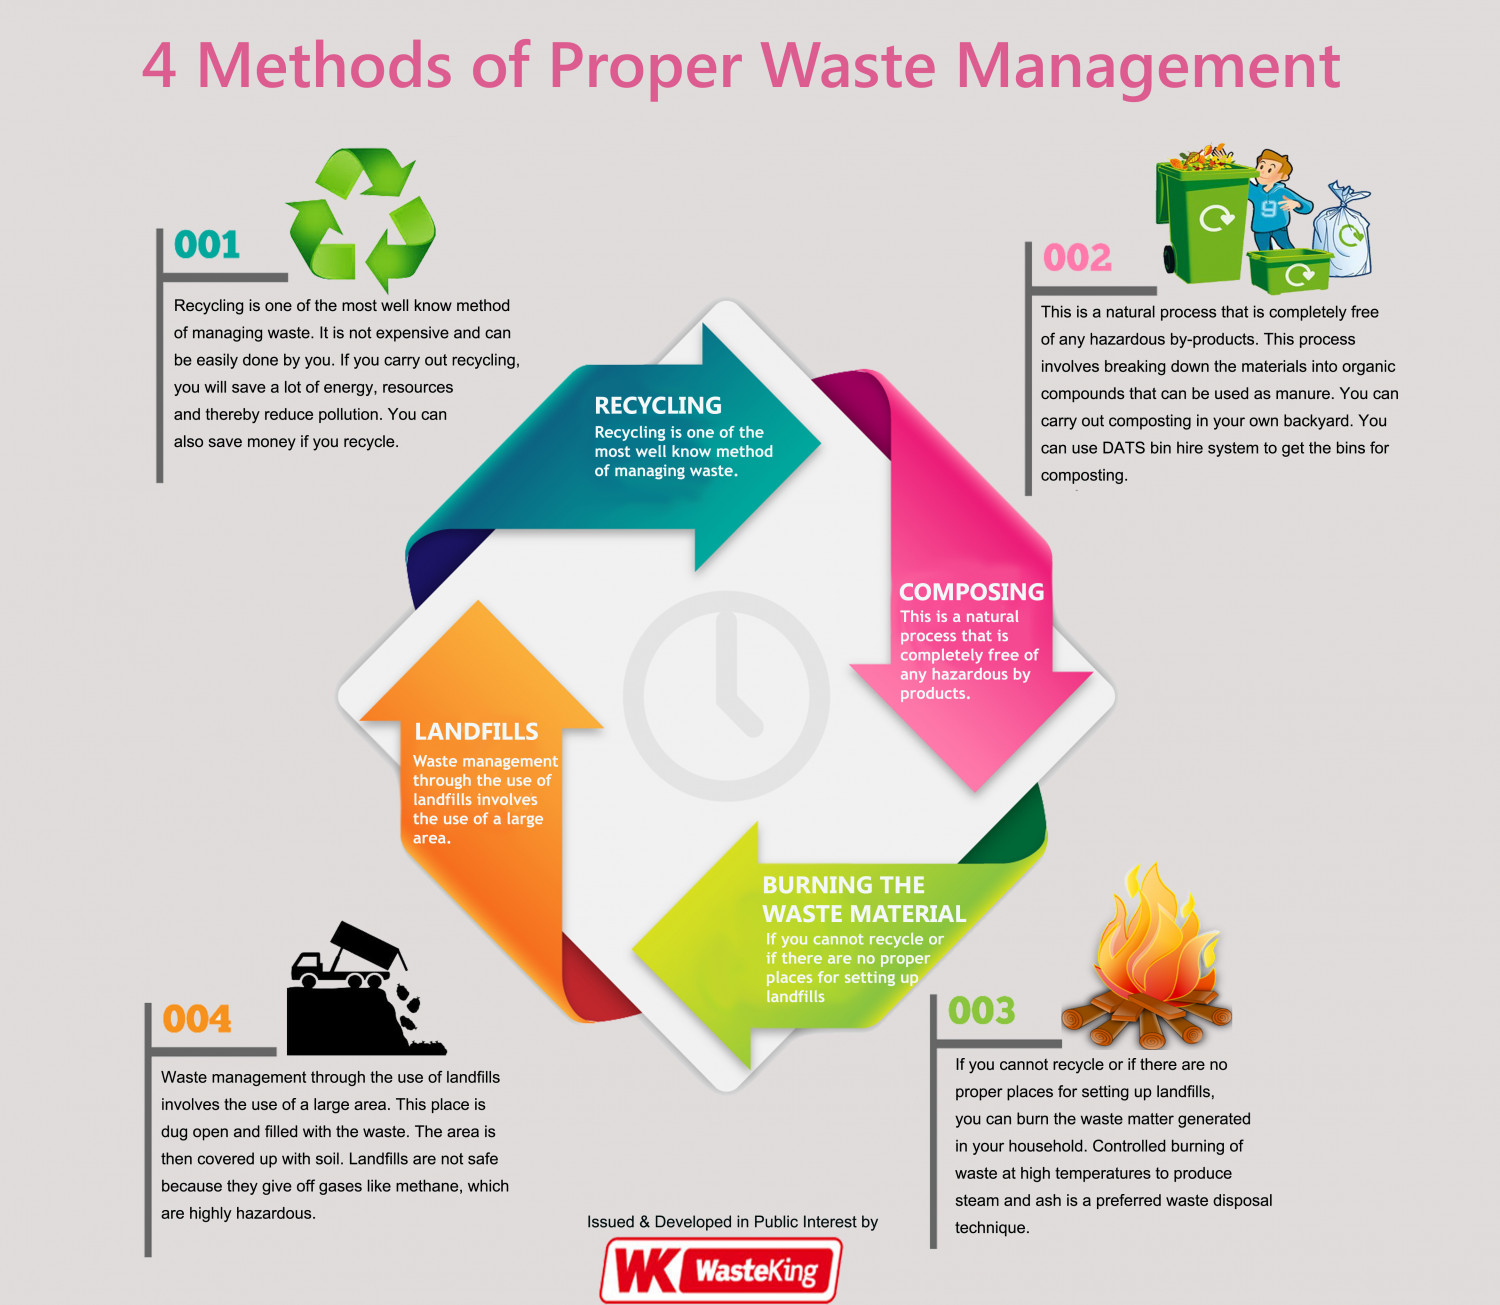 Domestic waste disposal practice and perceptions of private sector waste management in urban Accra